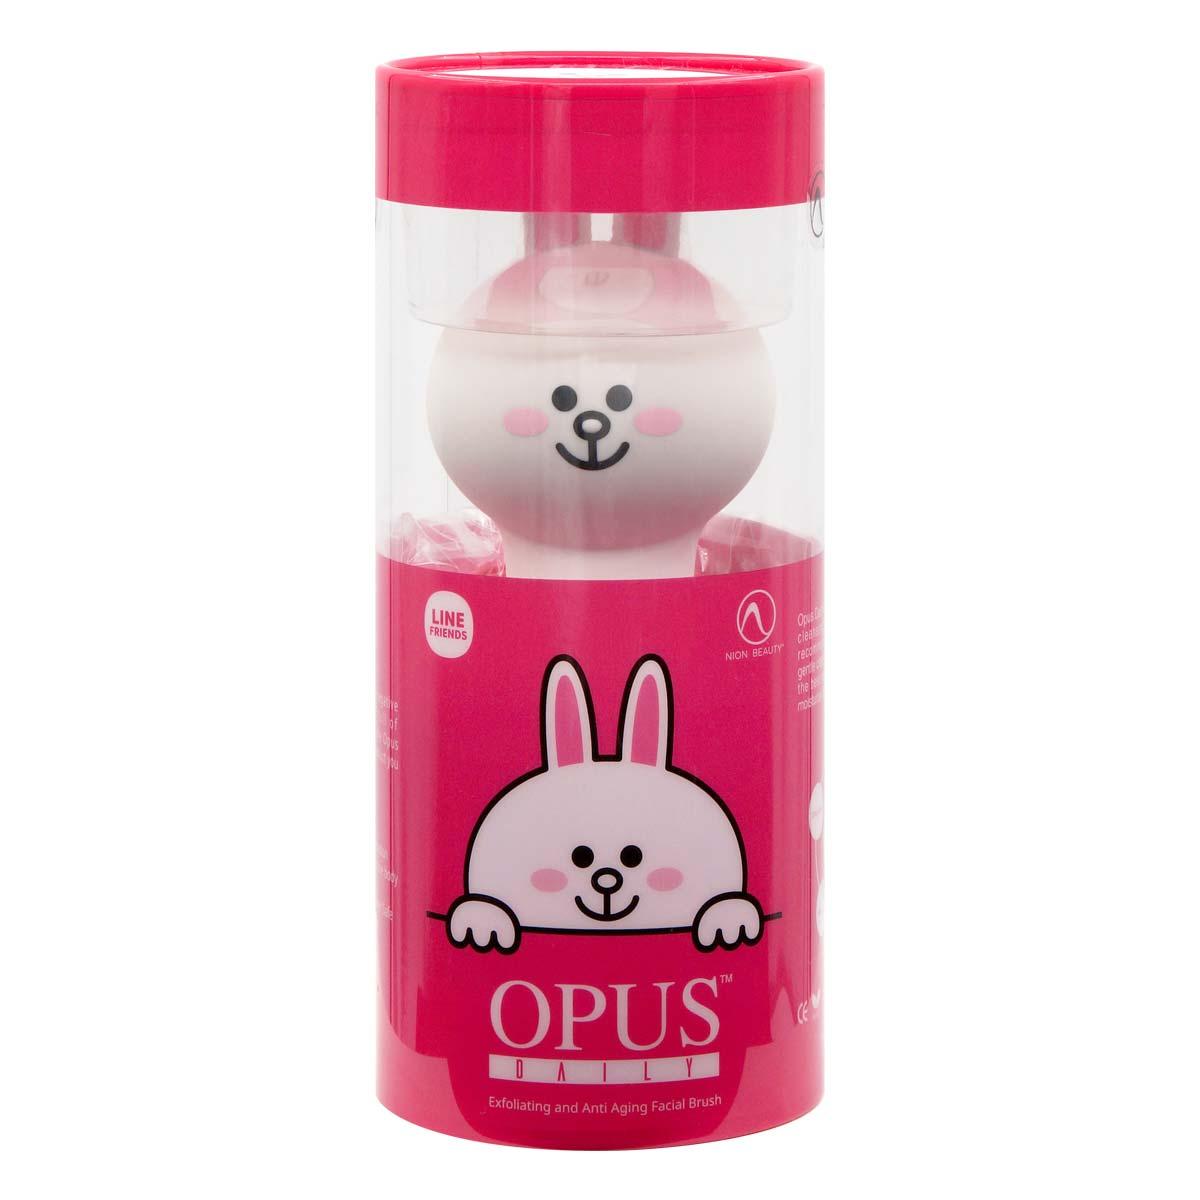 Line Friends Opus Daily Exfoliating and Anti Aging Facial Brush (Cony)